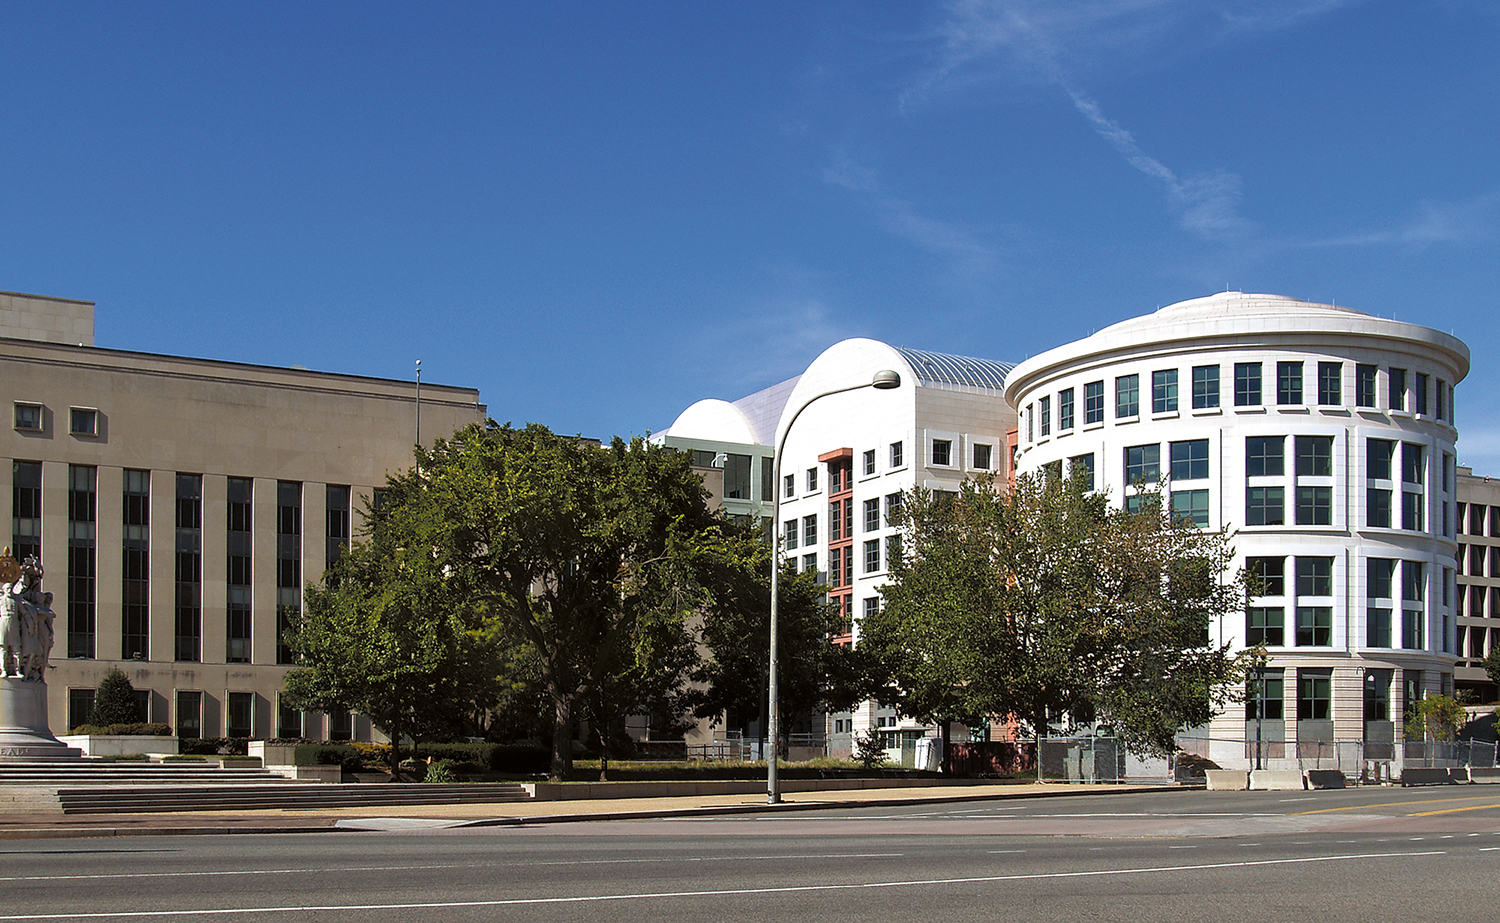 William B. Bryant Annex, located on Constitution Avenue, NW.